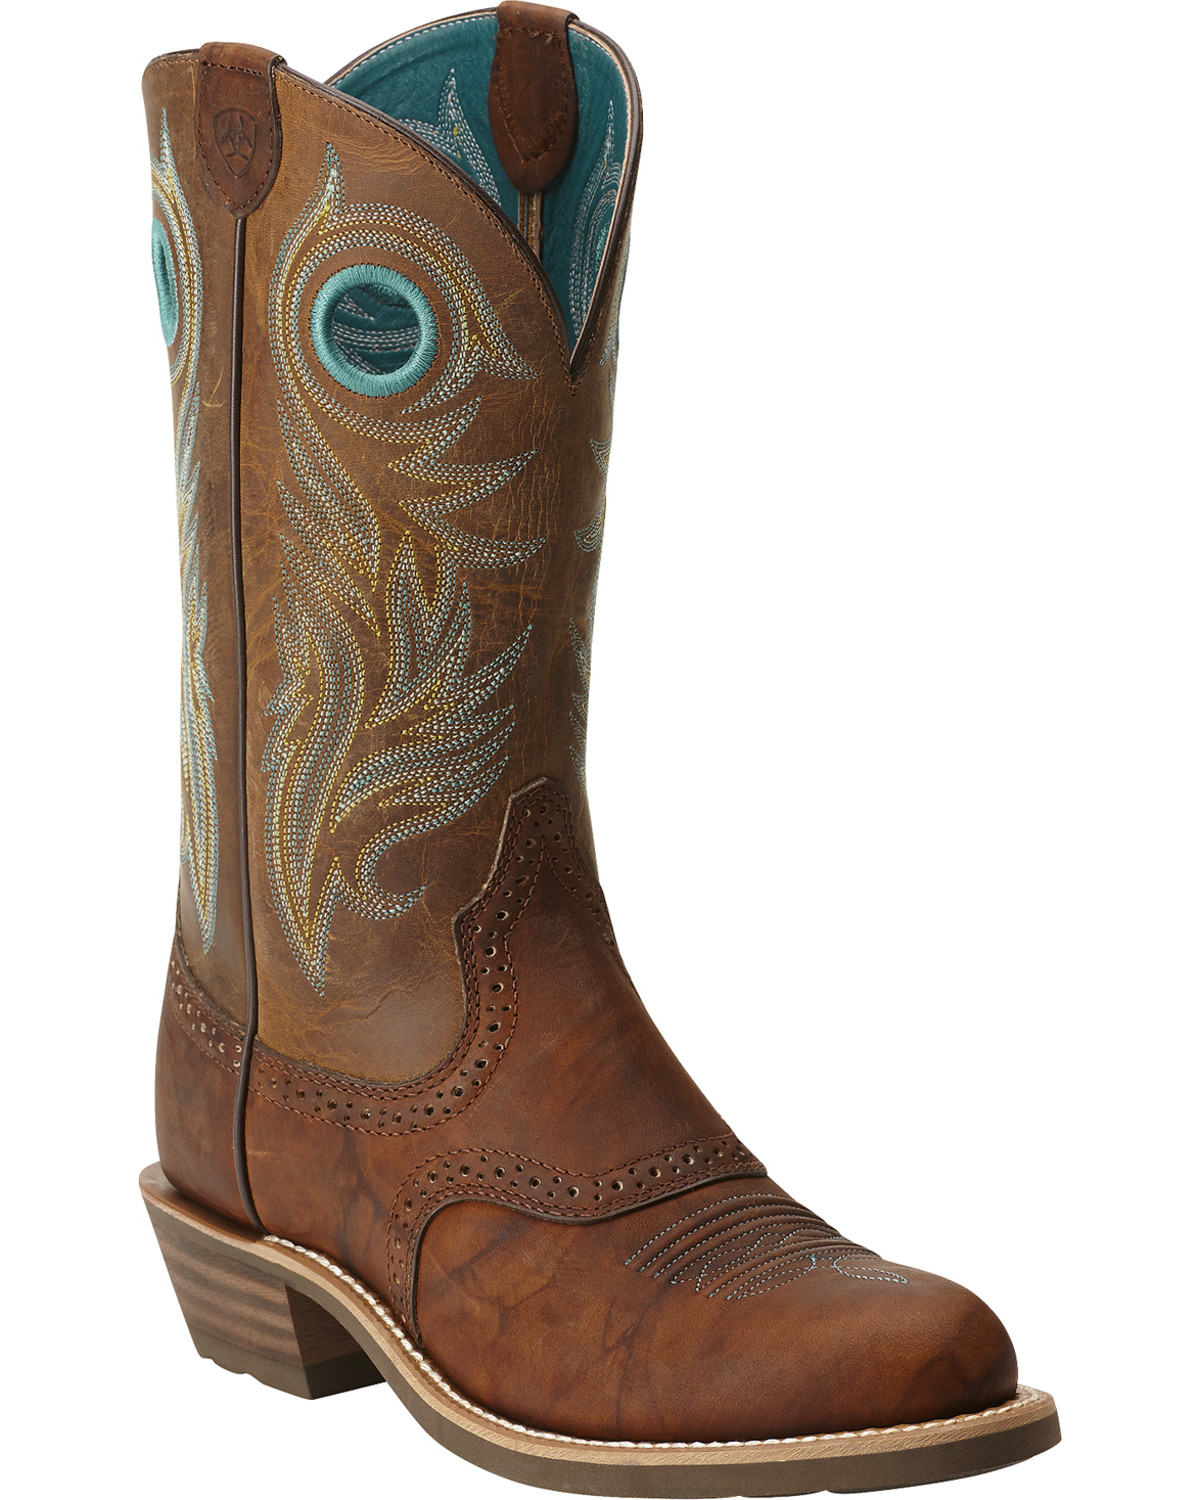 Shop American Eagle Maisie Women's Riding Boots at Payless to find the lowest prices on Women's Riding Boots. Free Shipping +$25, Free Returns at any Payless Store. Payless ShoeSource.